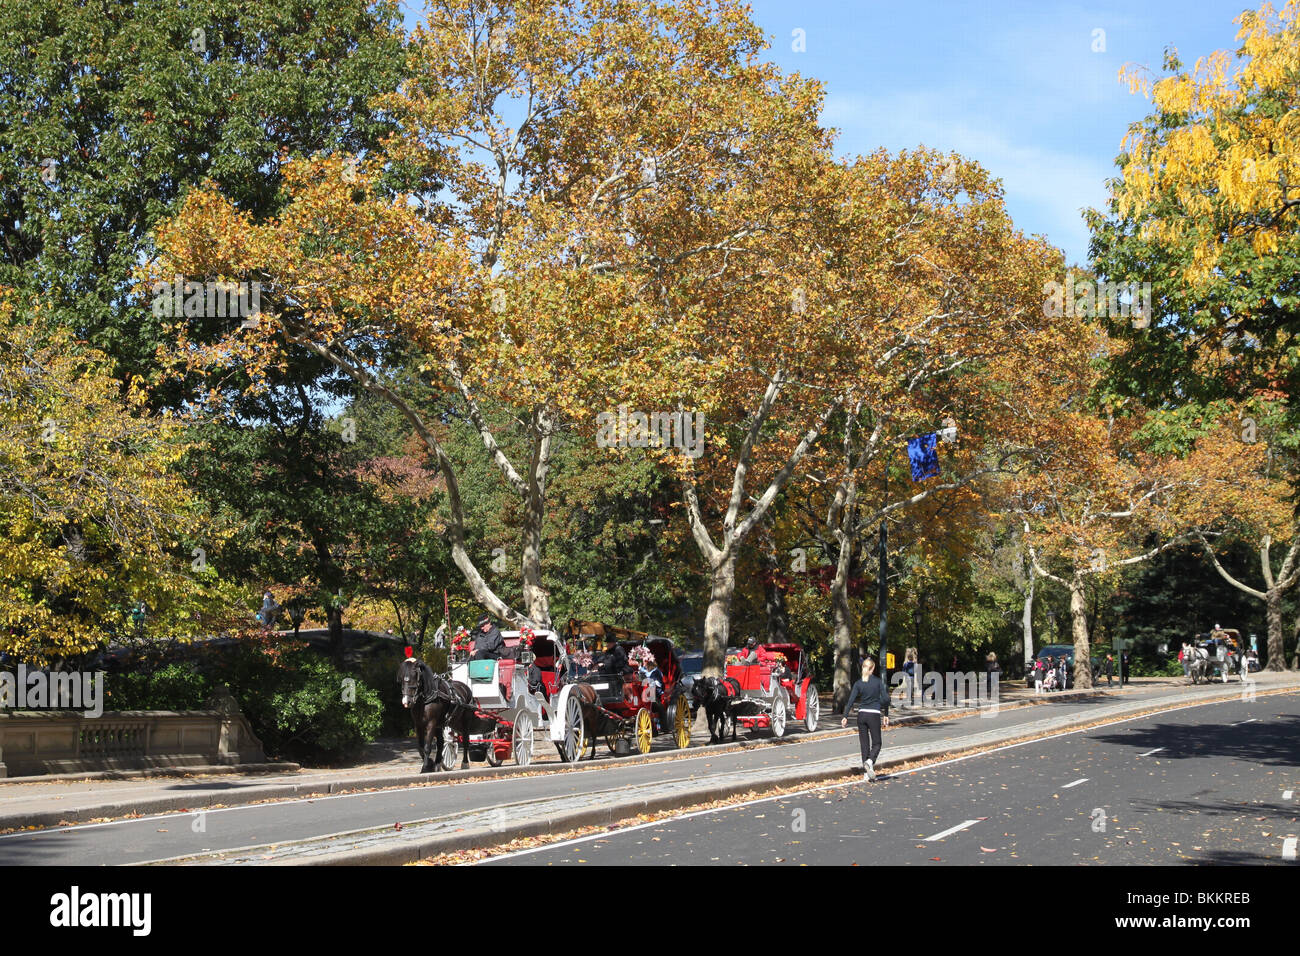 New York City Central Park Horse Drawn Carriages - Stock Image